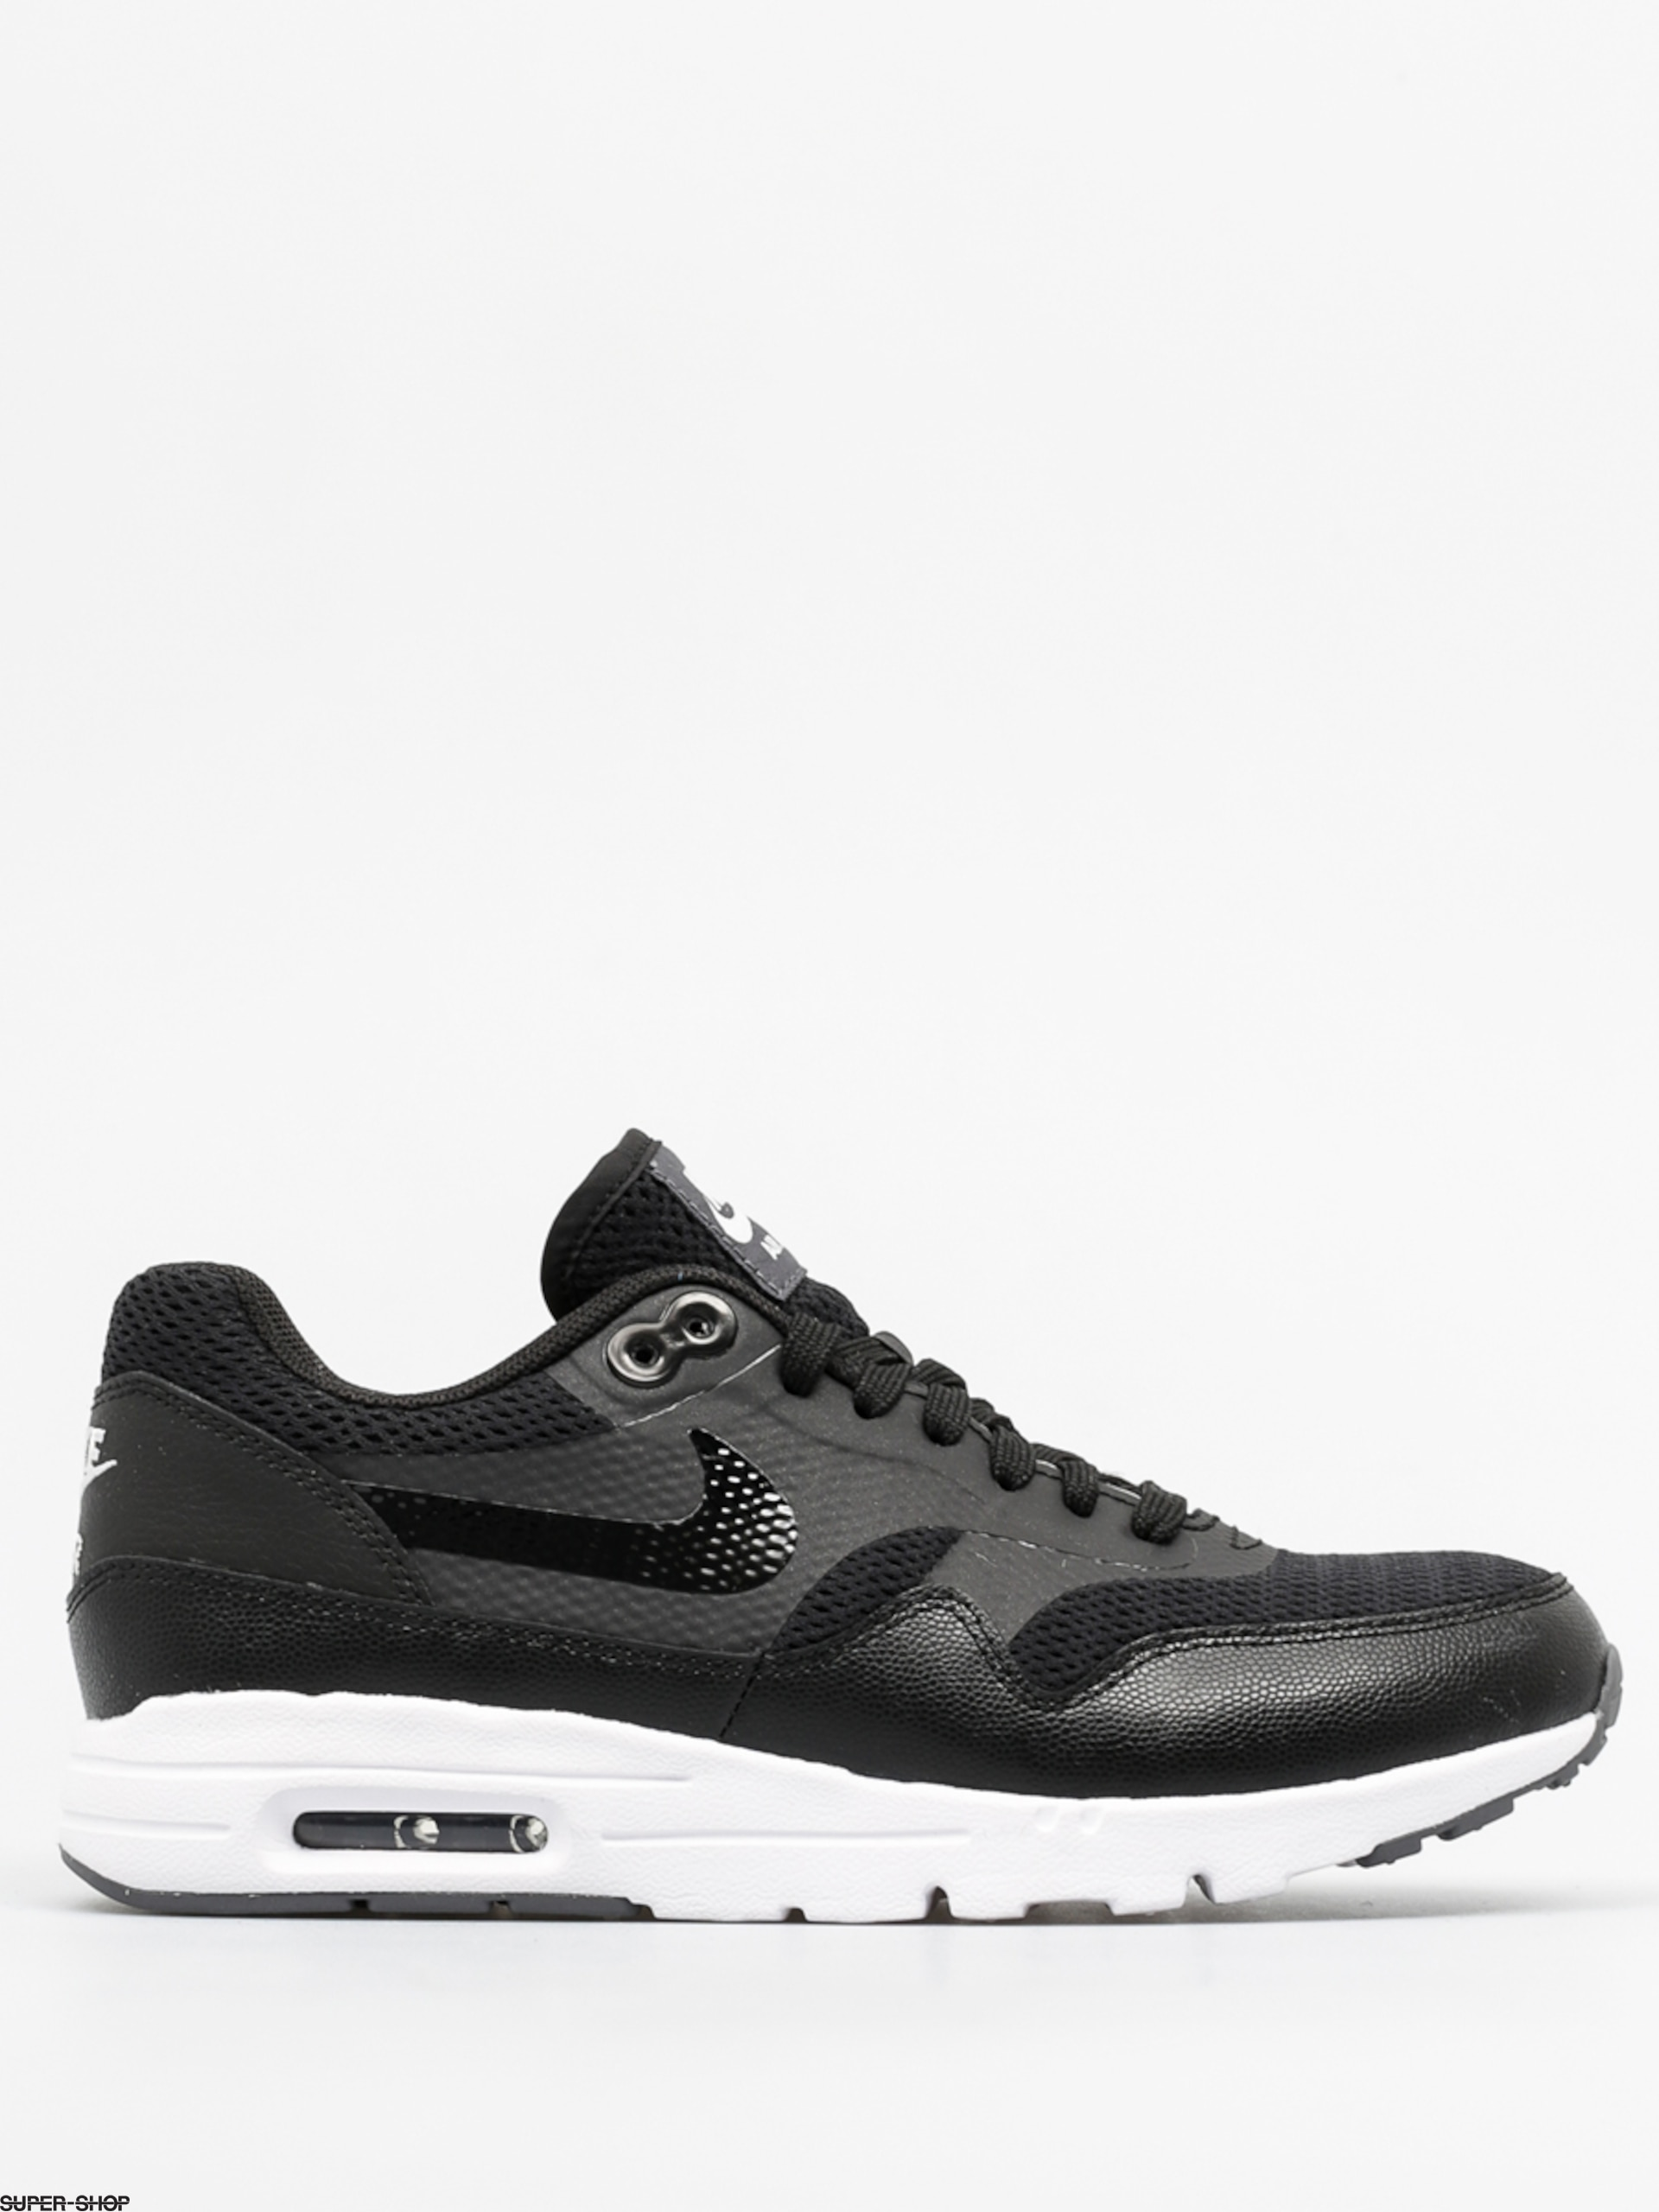 Nike Shoes Air Max 1 Wmn (Ultra Essentialsblack/black white)